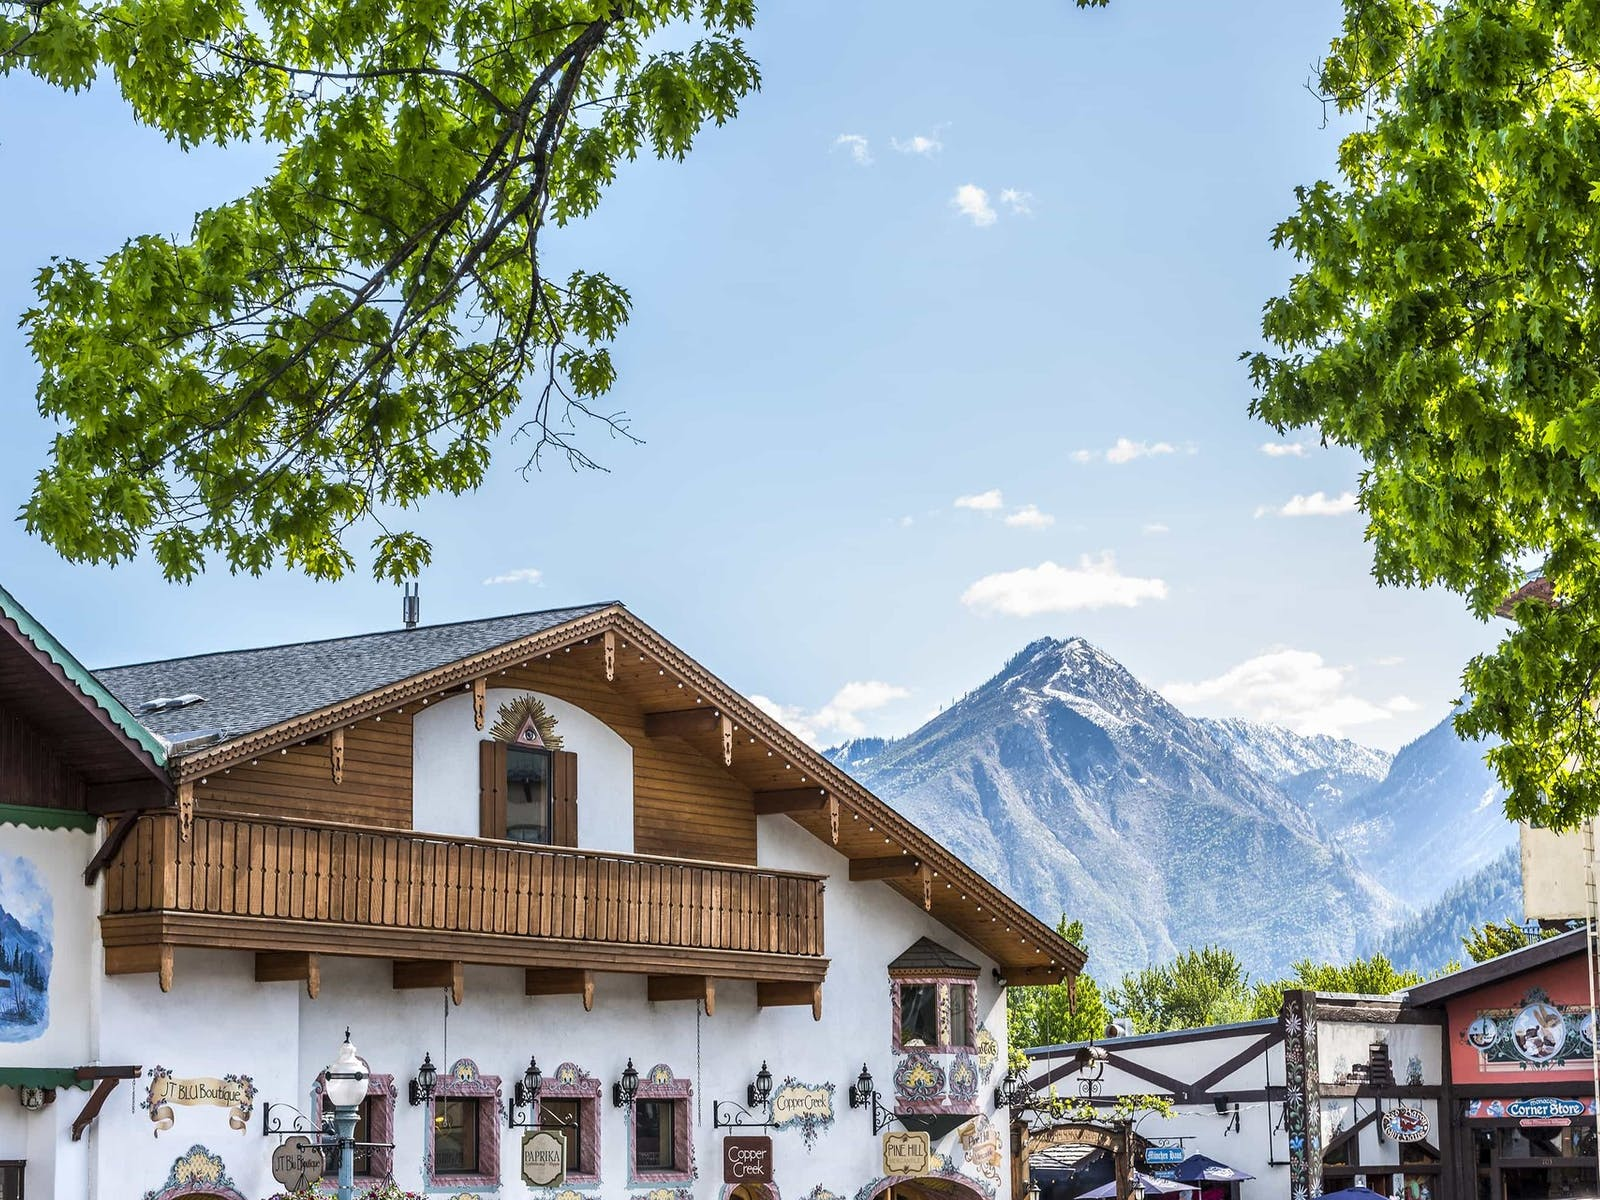 Leavenworth's Bavarian architecture